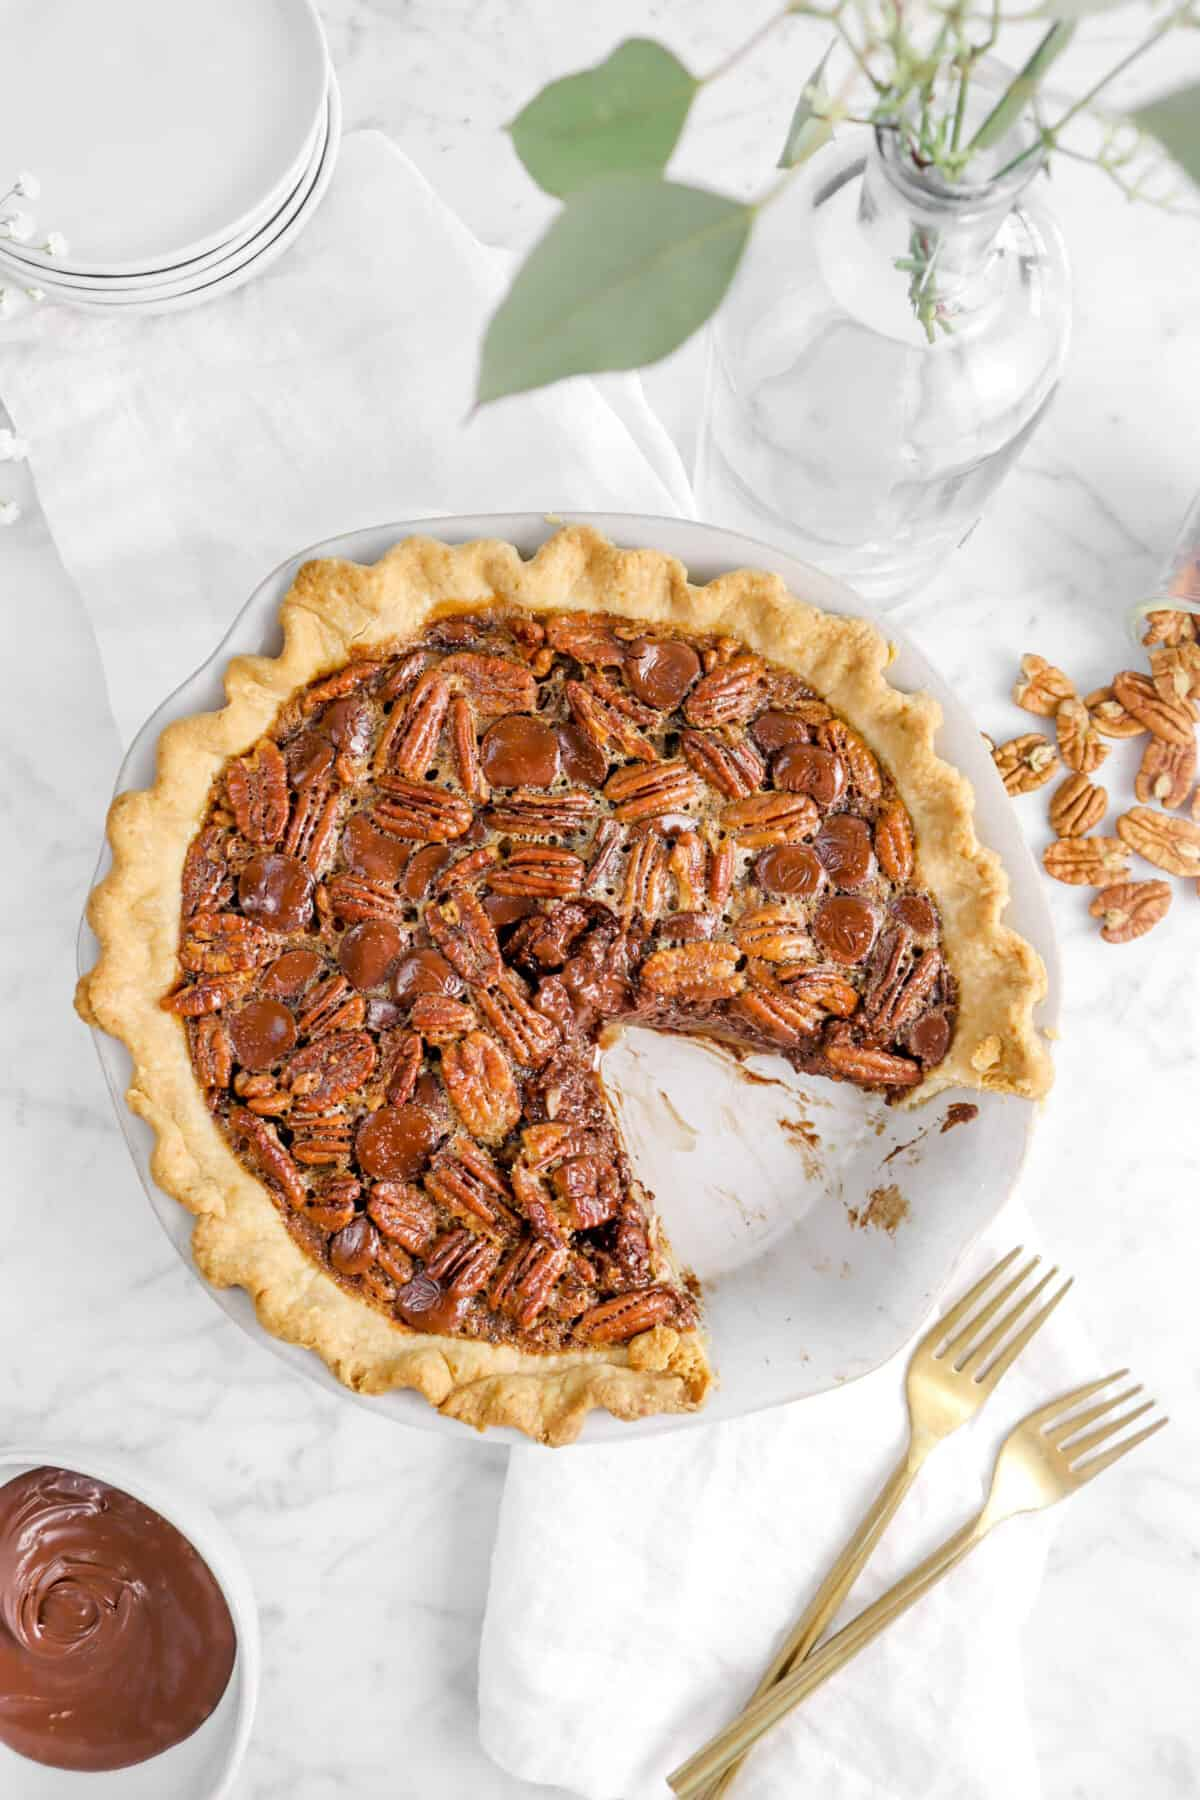 pecan pie with a slice taken out of it, flowers, forks, and pecans